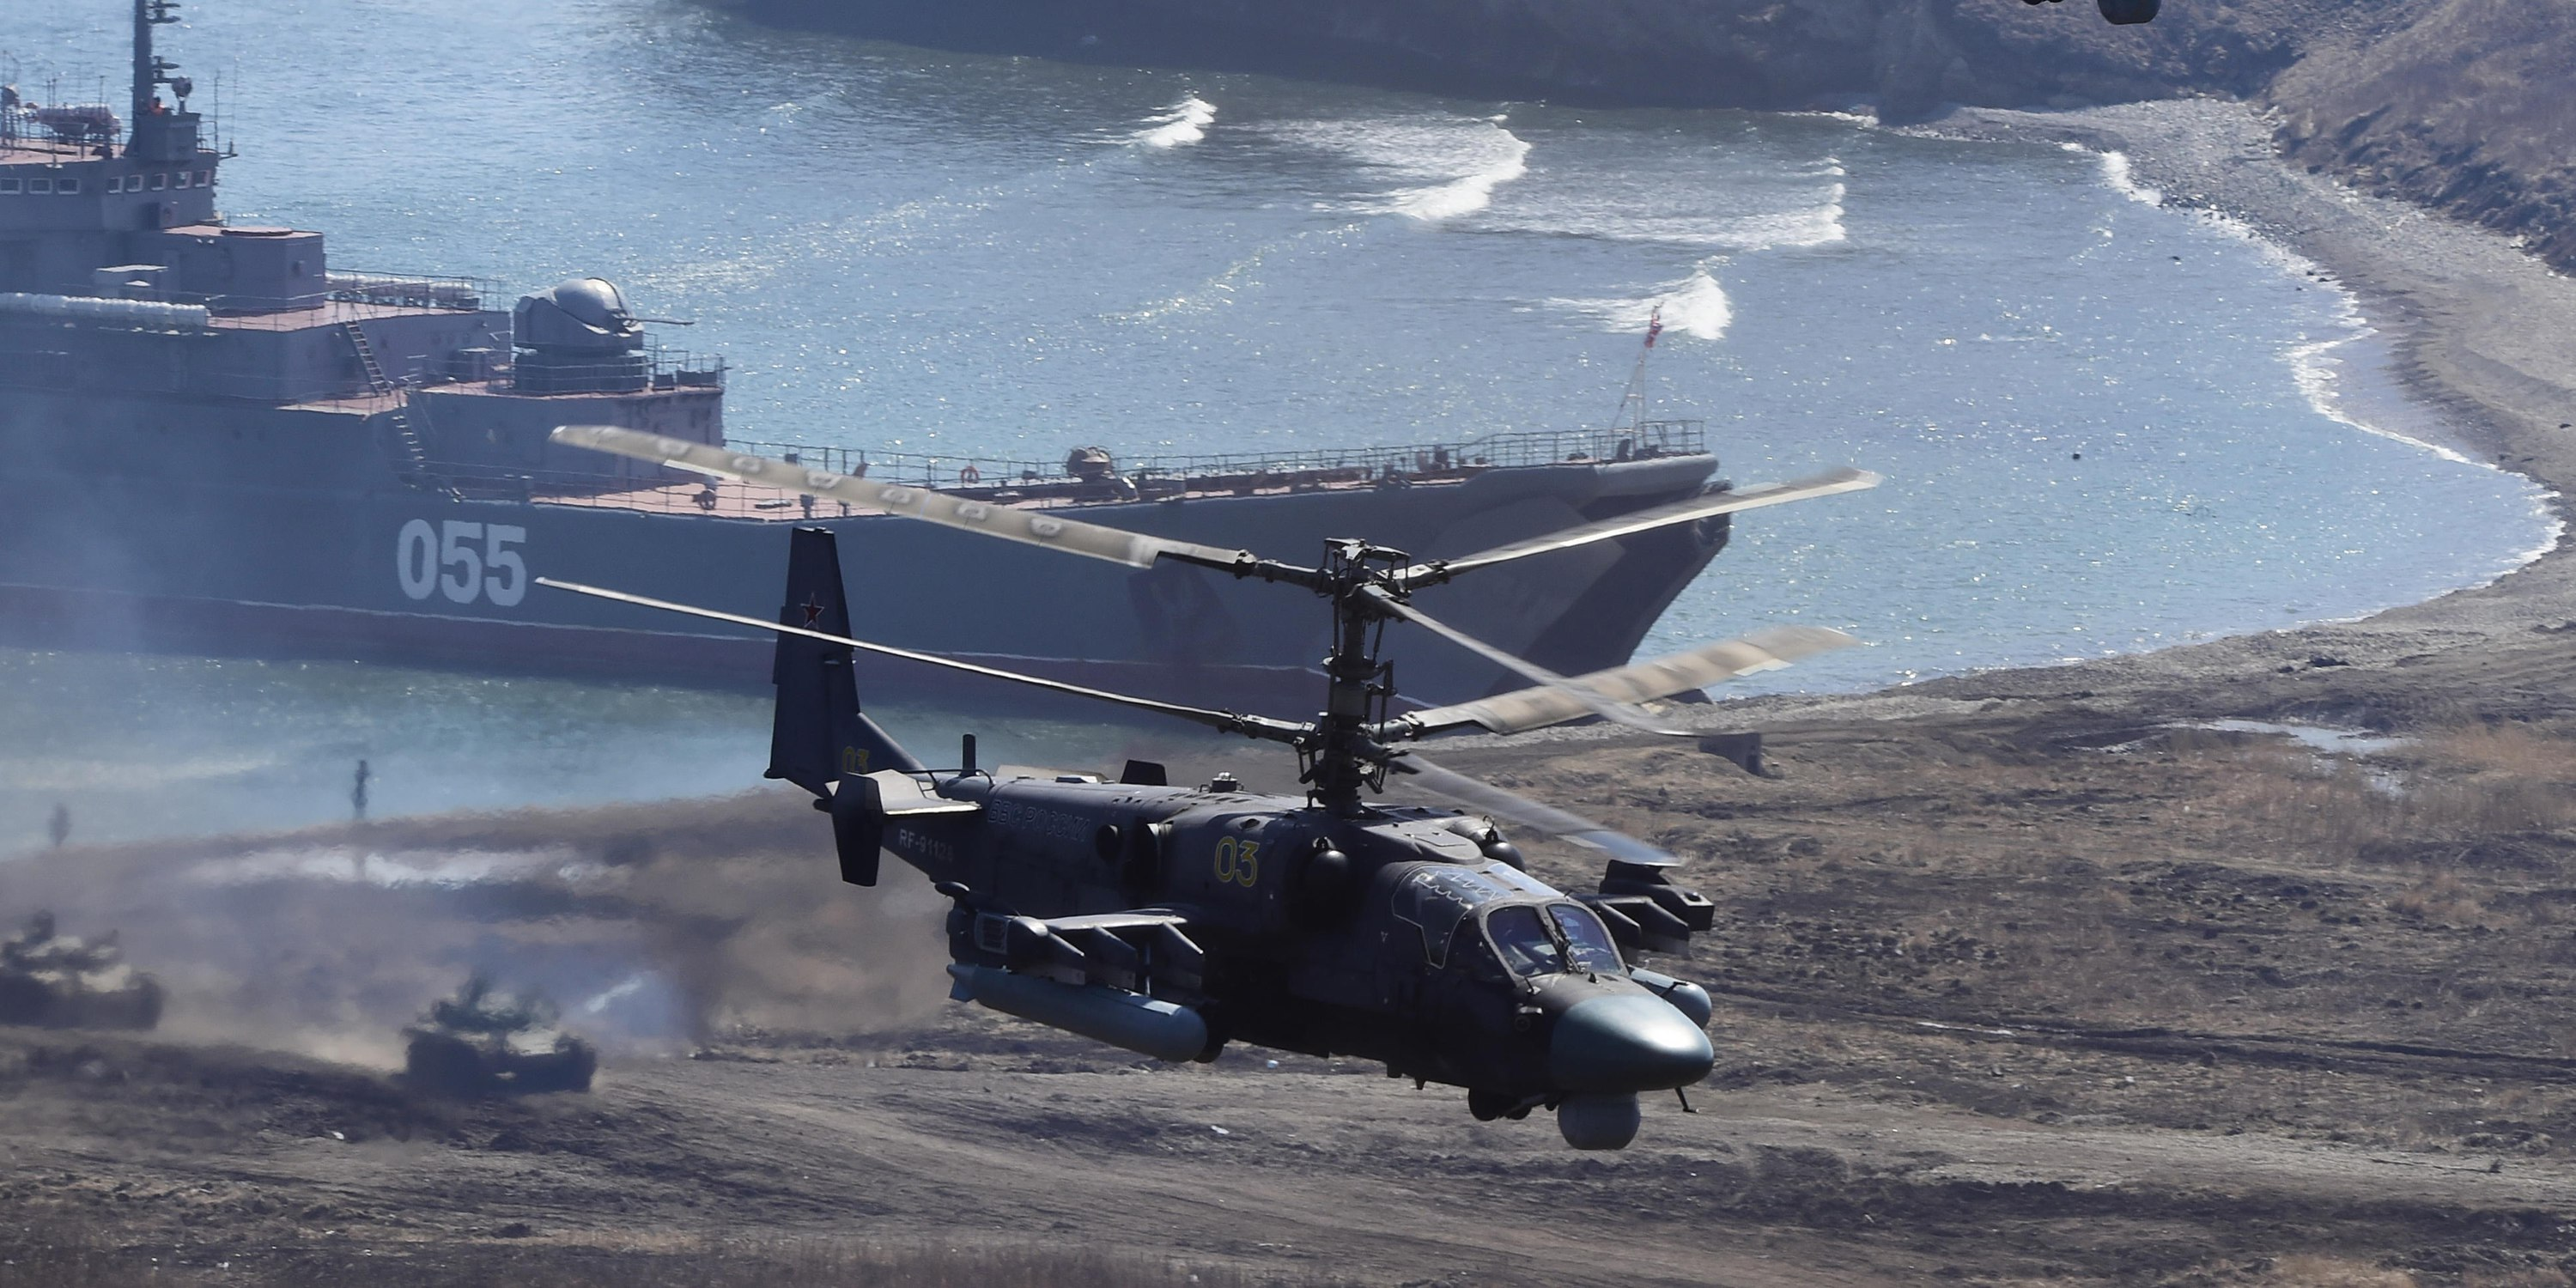 Kamov Ka-52 attack helicopters andT he Admiral Nevelskiy large landing ship take part in a military drill conducted by Russian Pacific Fleet's marine regiments and Russian Eastern Military District's mechanised infantry brigade at the Klerk range